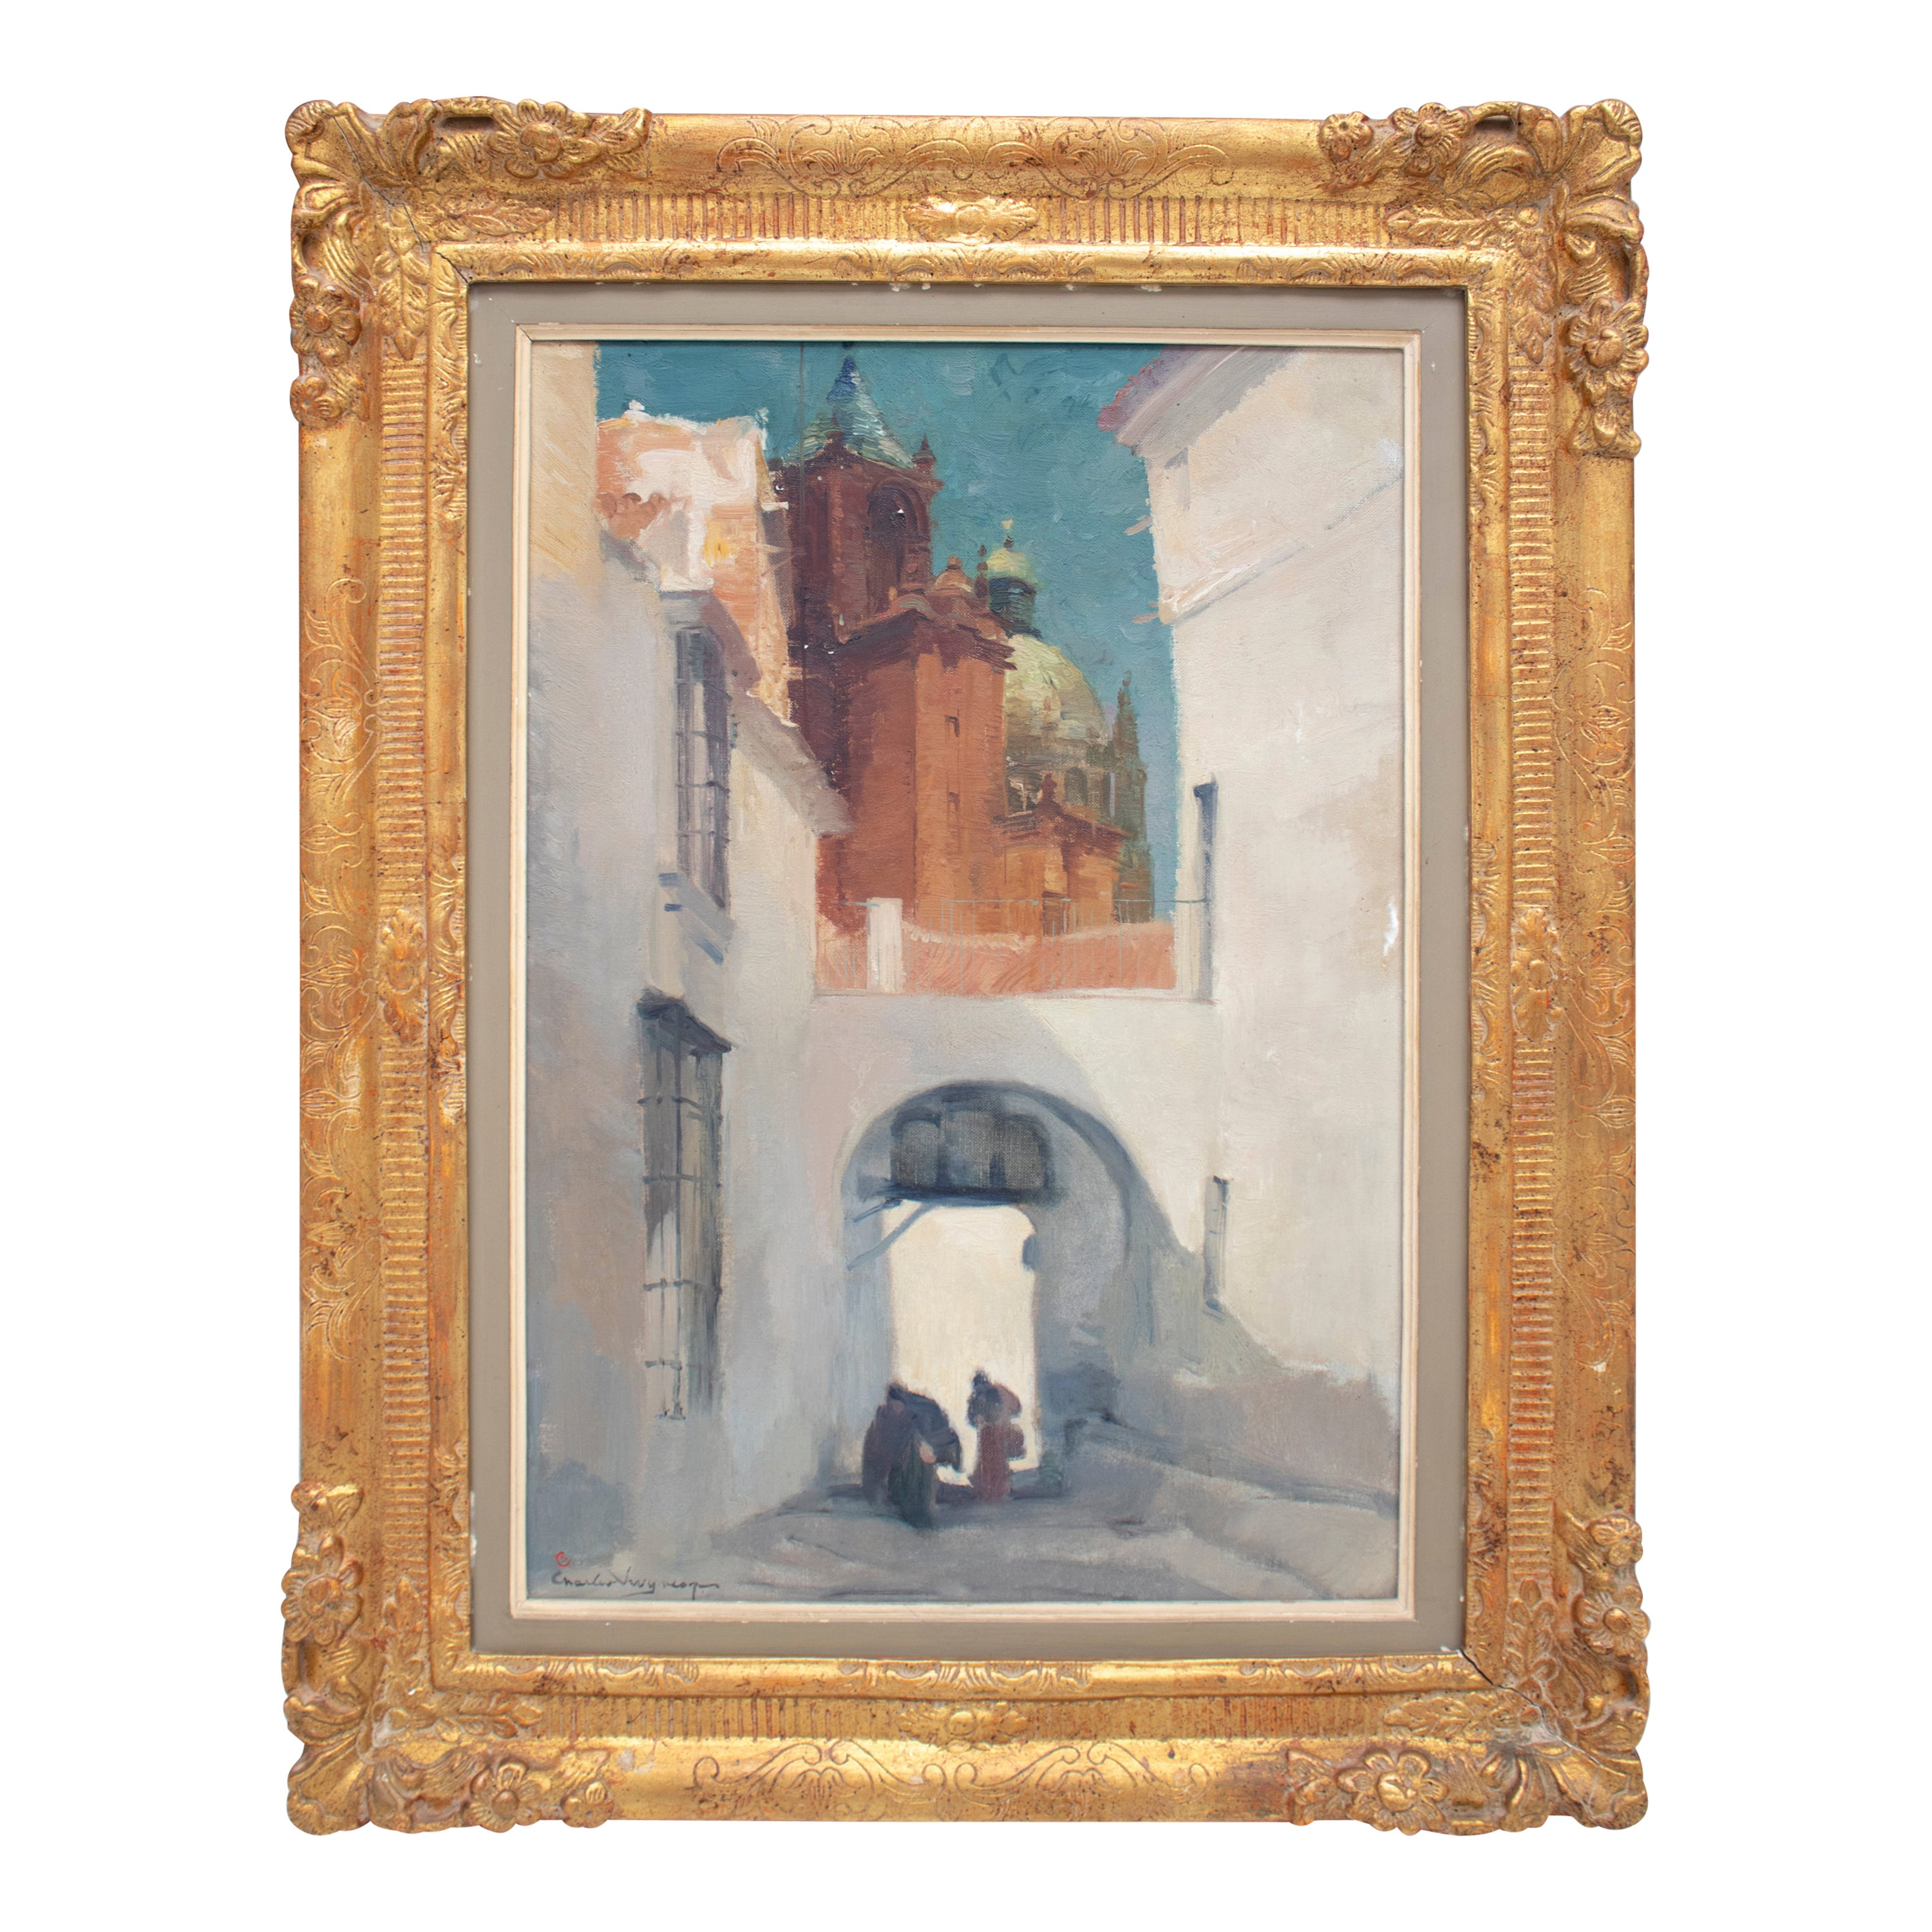 Charles Swyncop Oil on Canvas Painting of an Andalusian Town